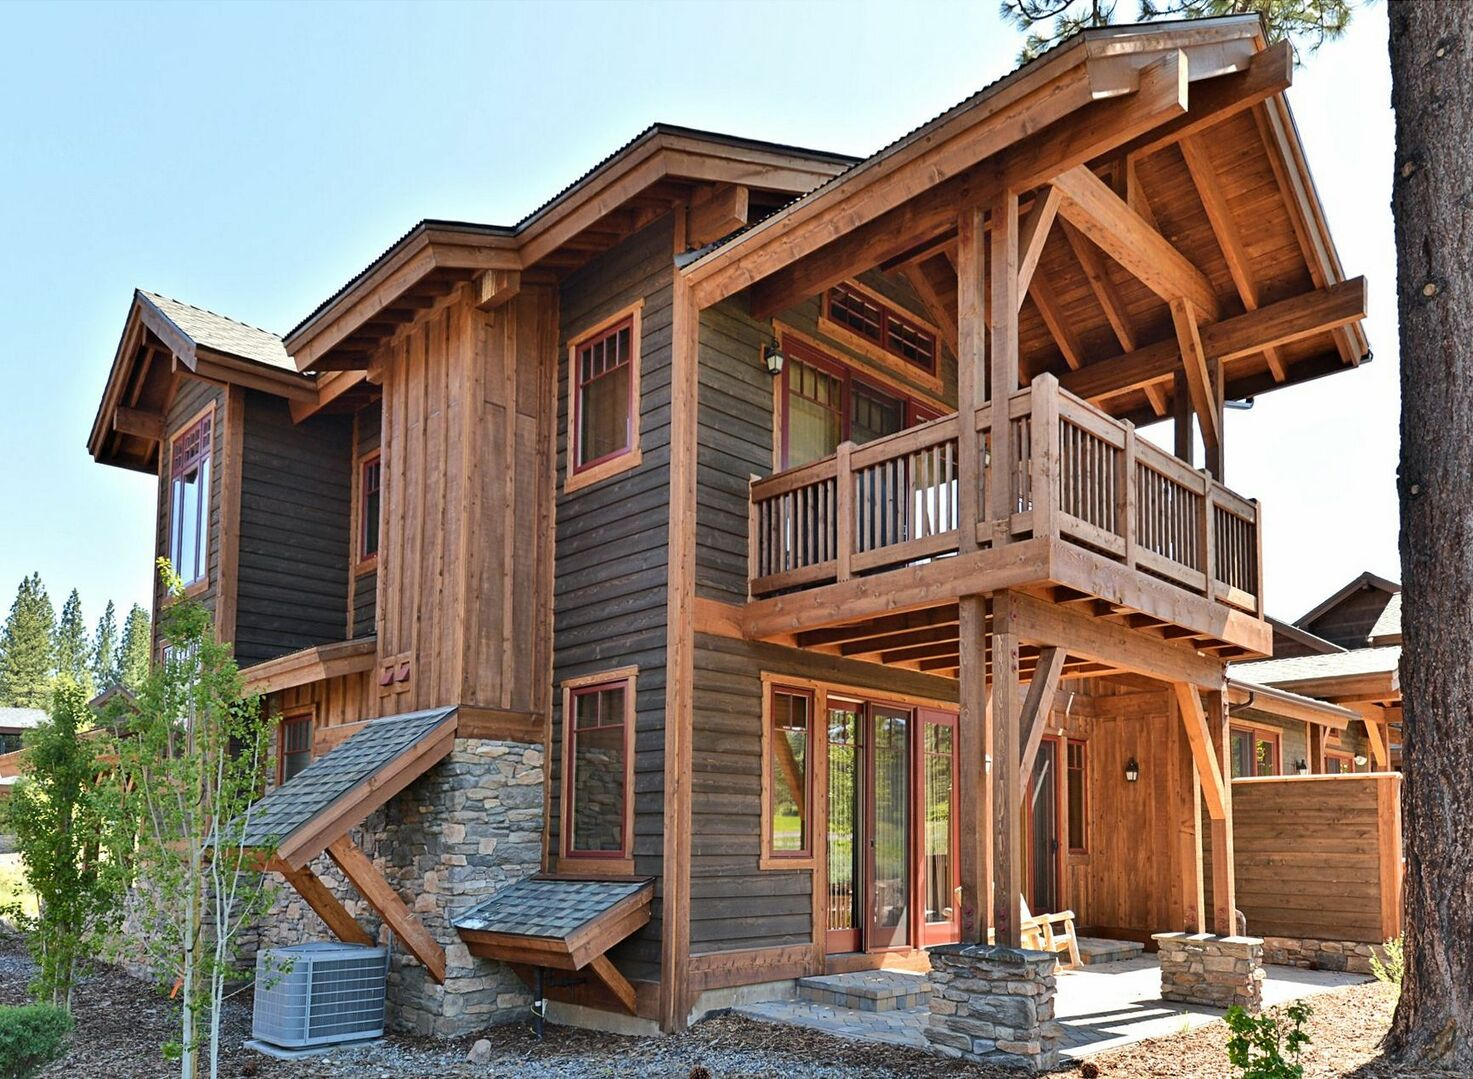 An Image of the Side of Vacation Rental in Truckee CA.